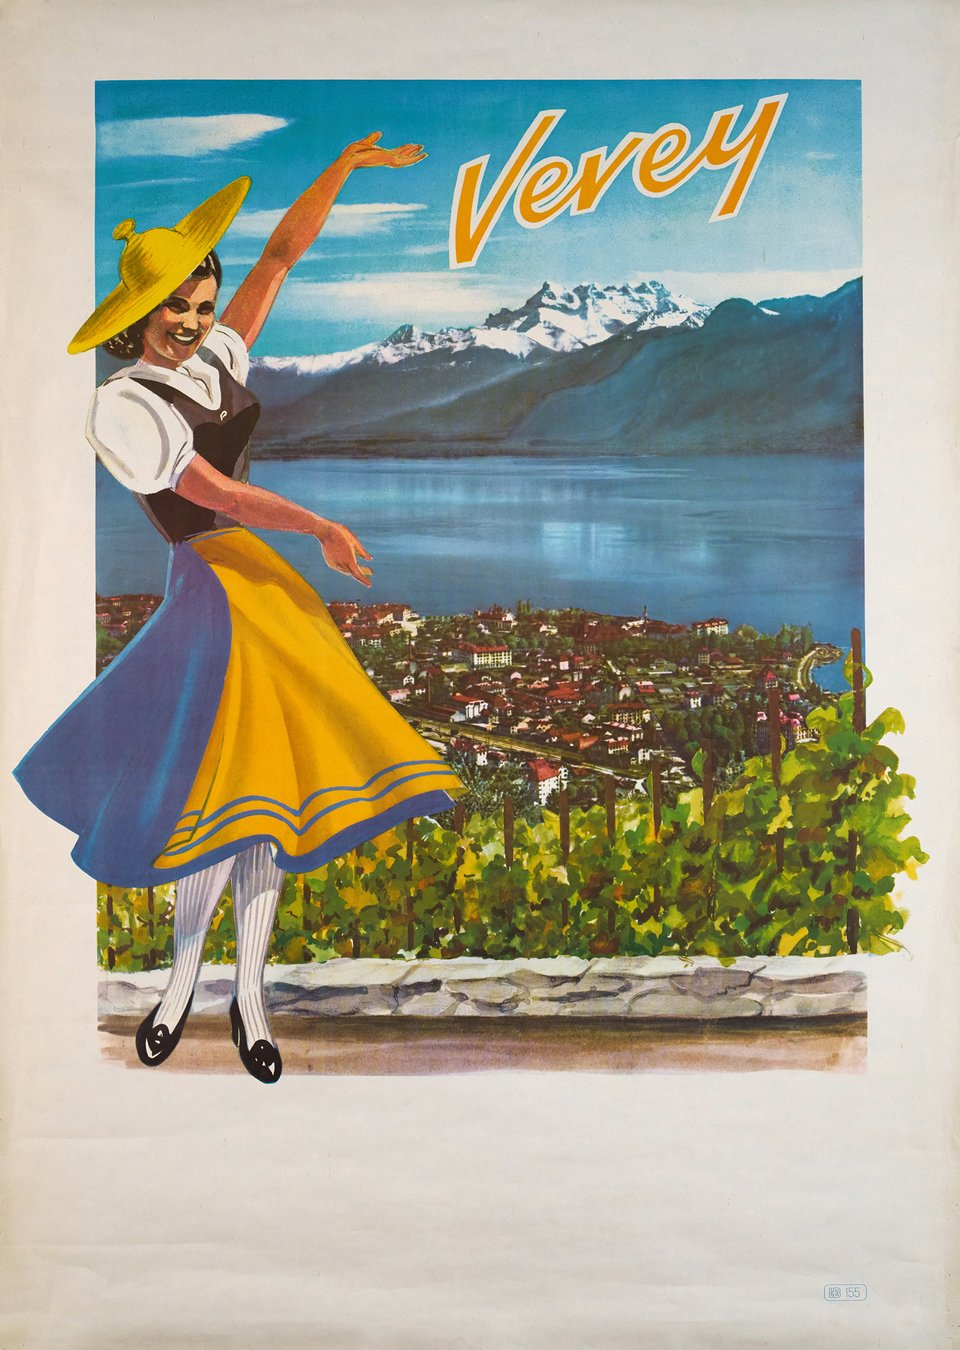 Vevey – Affiche ancienne – ANONYME – 1950